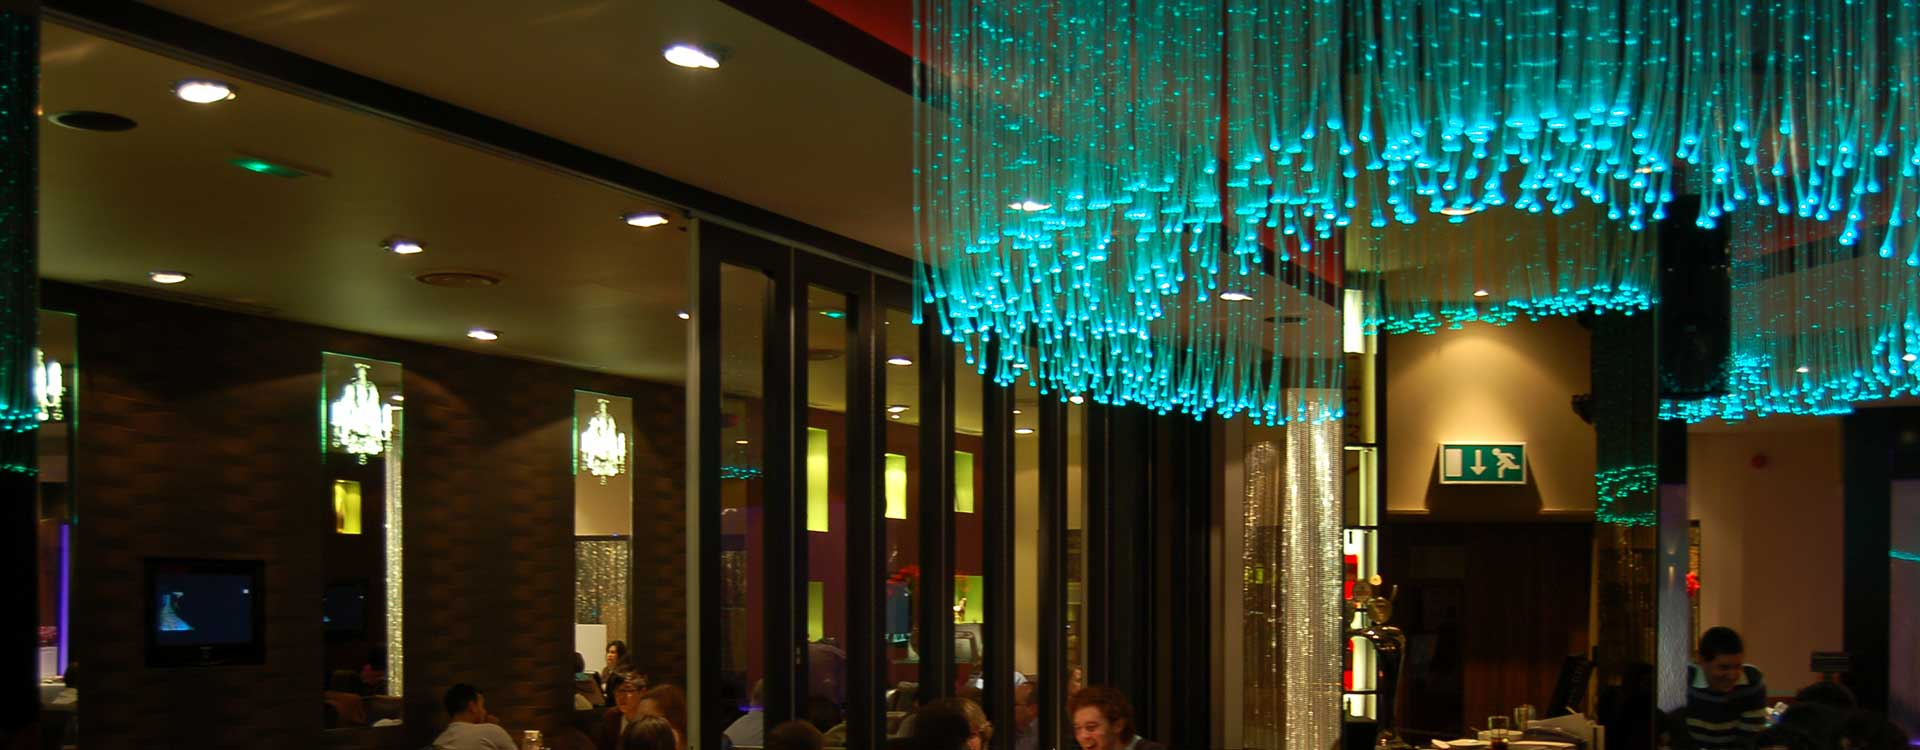 Ufo Lighting The Curry Lounge Chandeliers